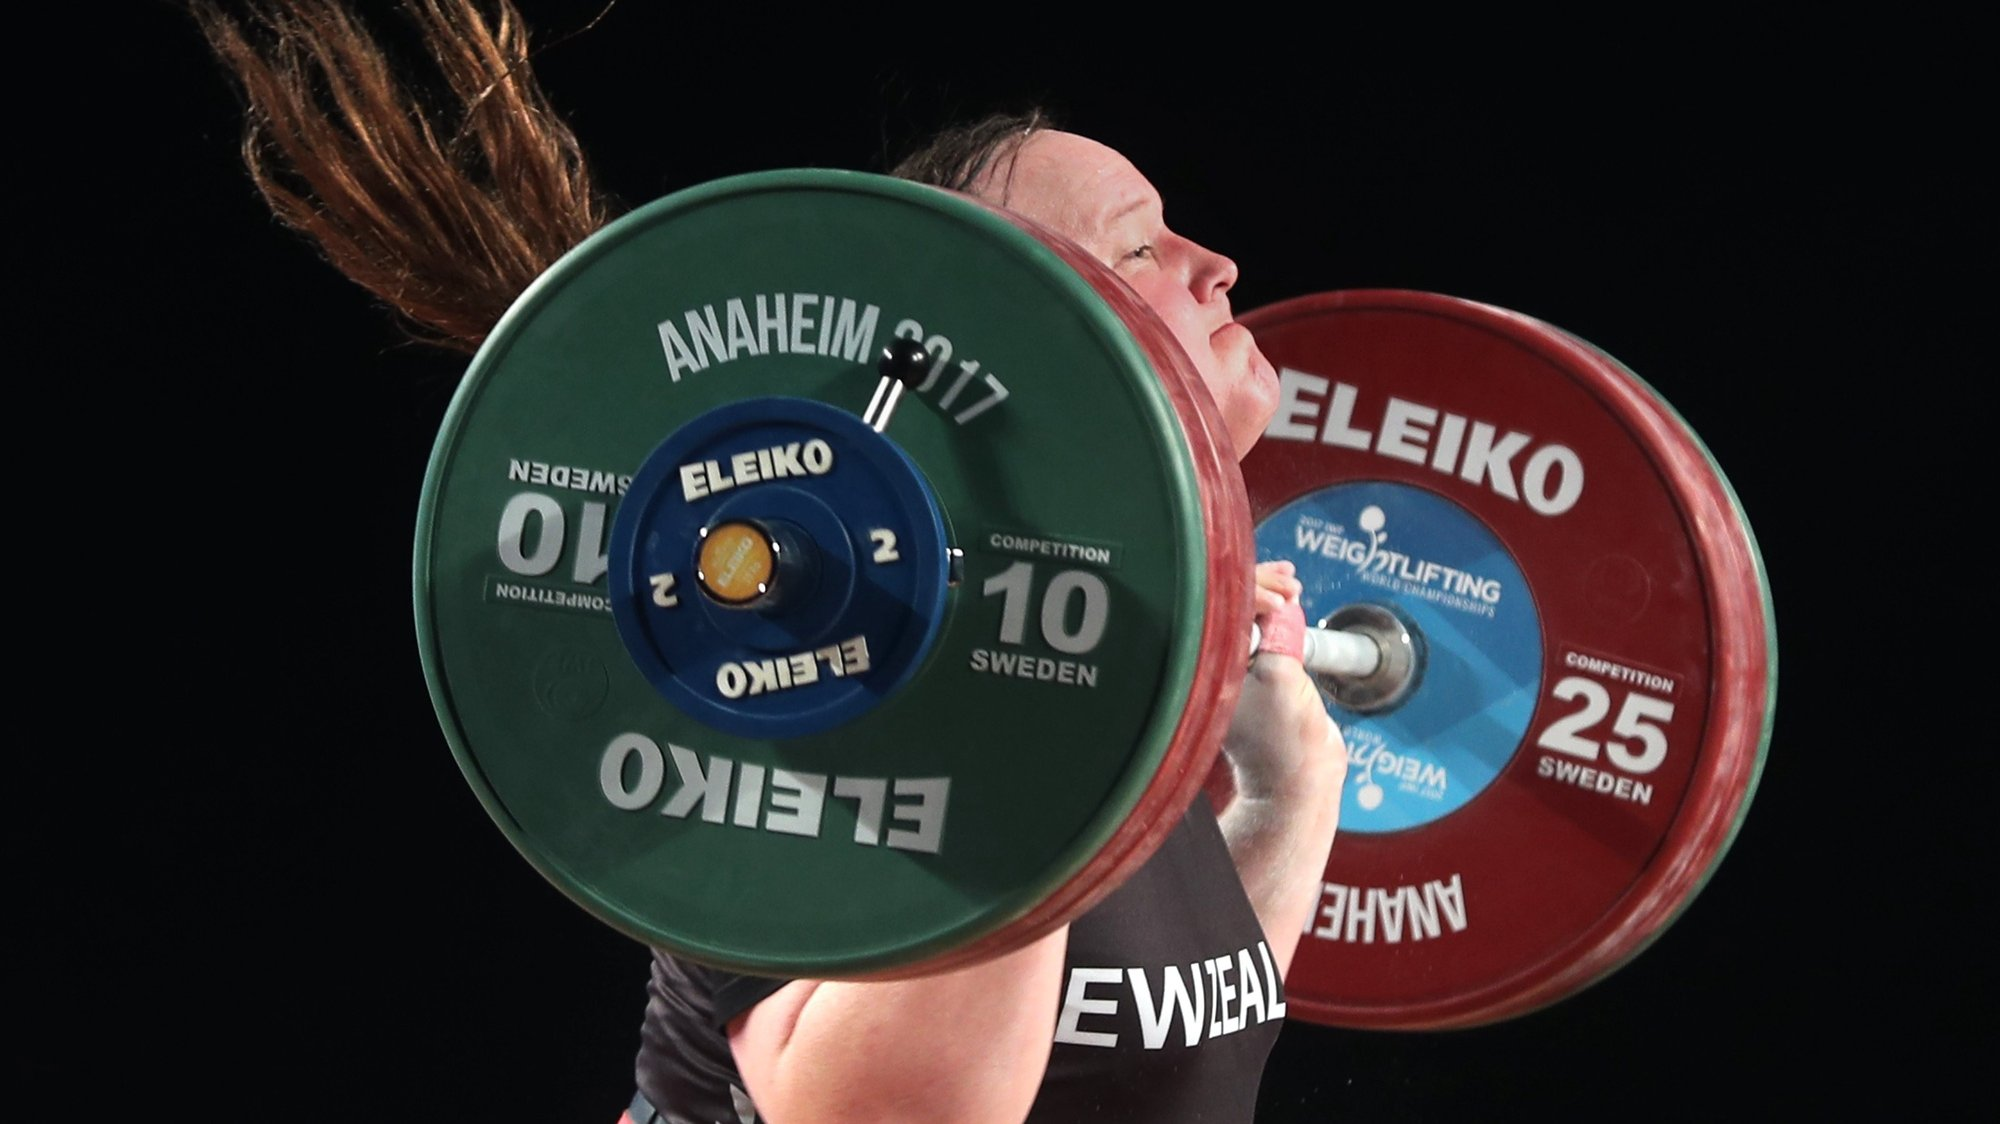 epa06370292 Transgender athlete Laurel Hubbard from New Zealand in action during the women's 90+ kg weight class competition at the Weightlifting World Championships in Anaheim, California, USA, 05 December 2017. Hubbard placed second in the Snatch event and second in the total for the 90+ kg weight class.  EPA/MIKE NELSON